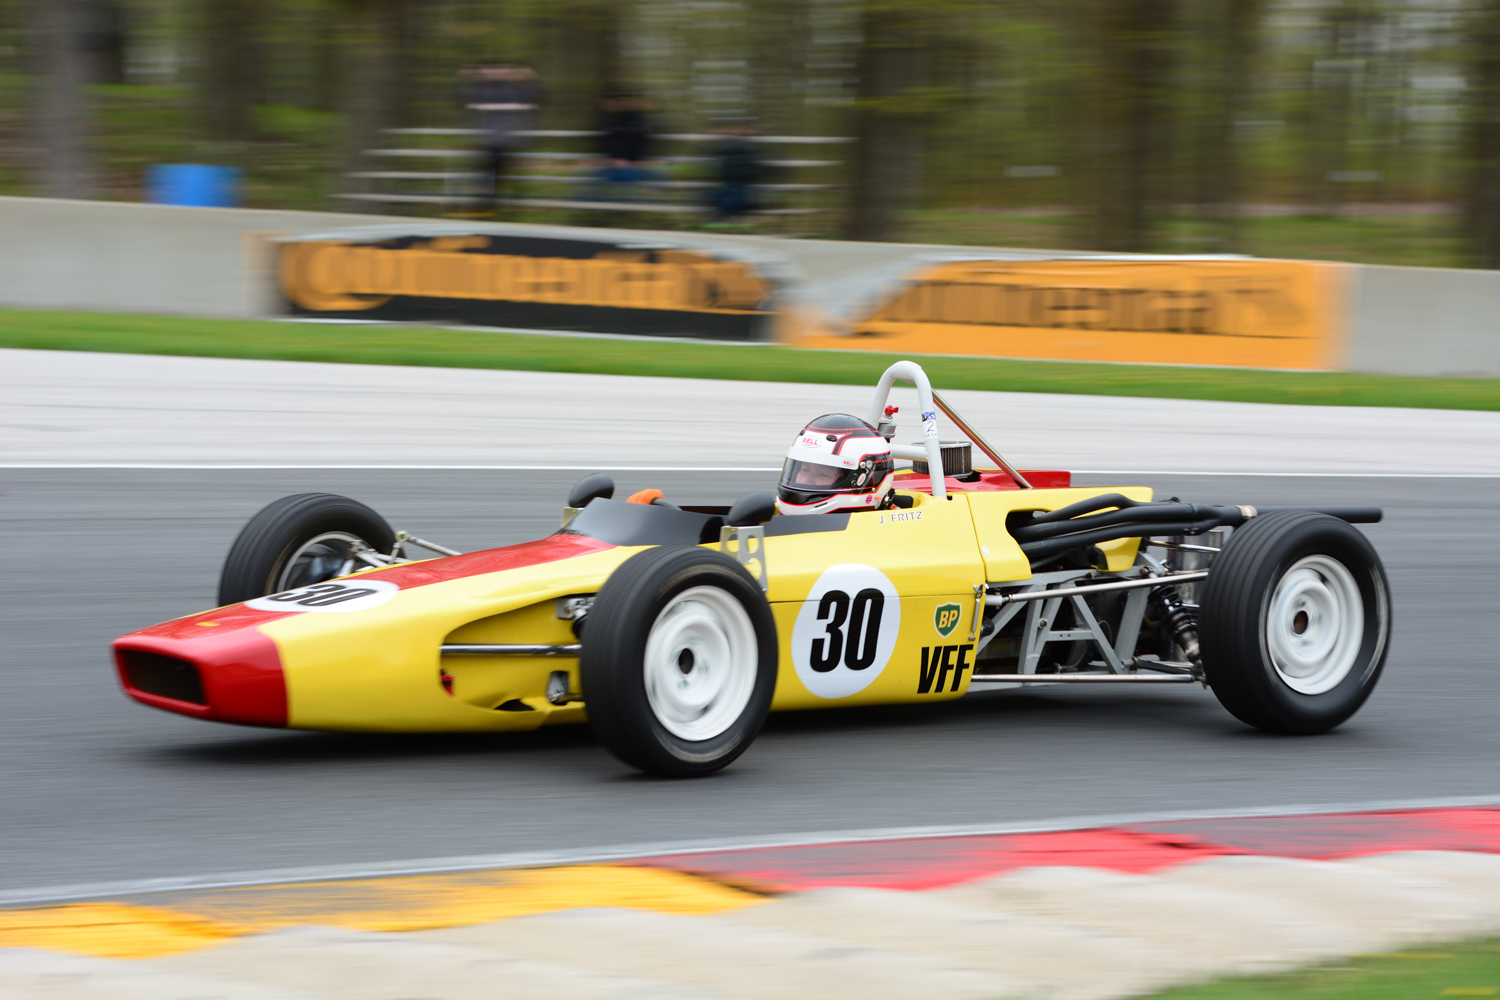 18 MAY: SVRA Spring Vintage Festival Fred Sickler